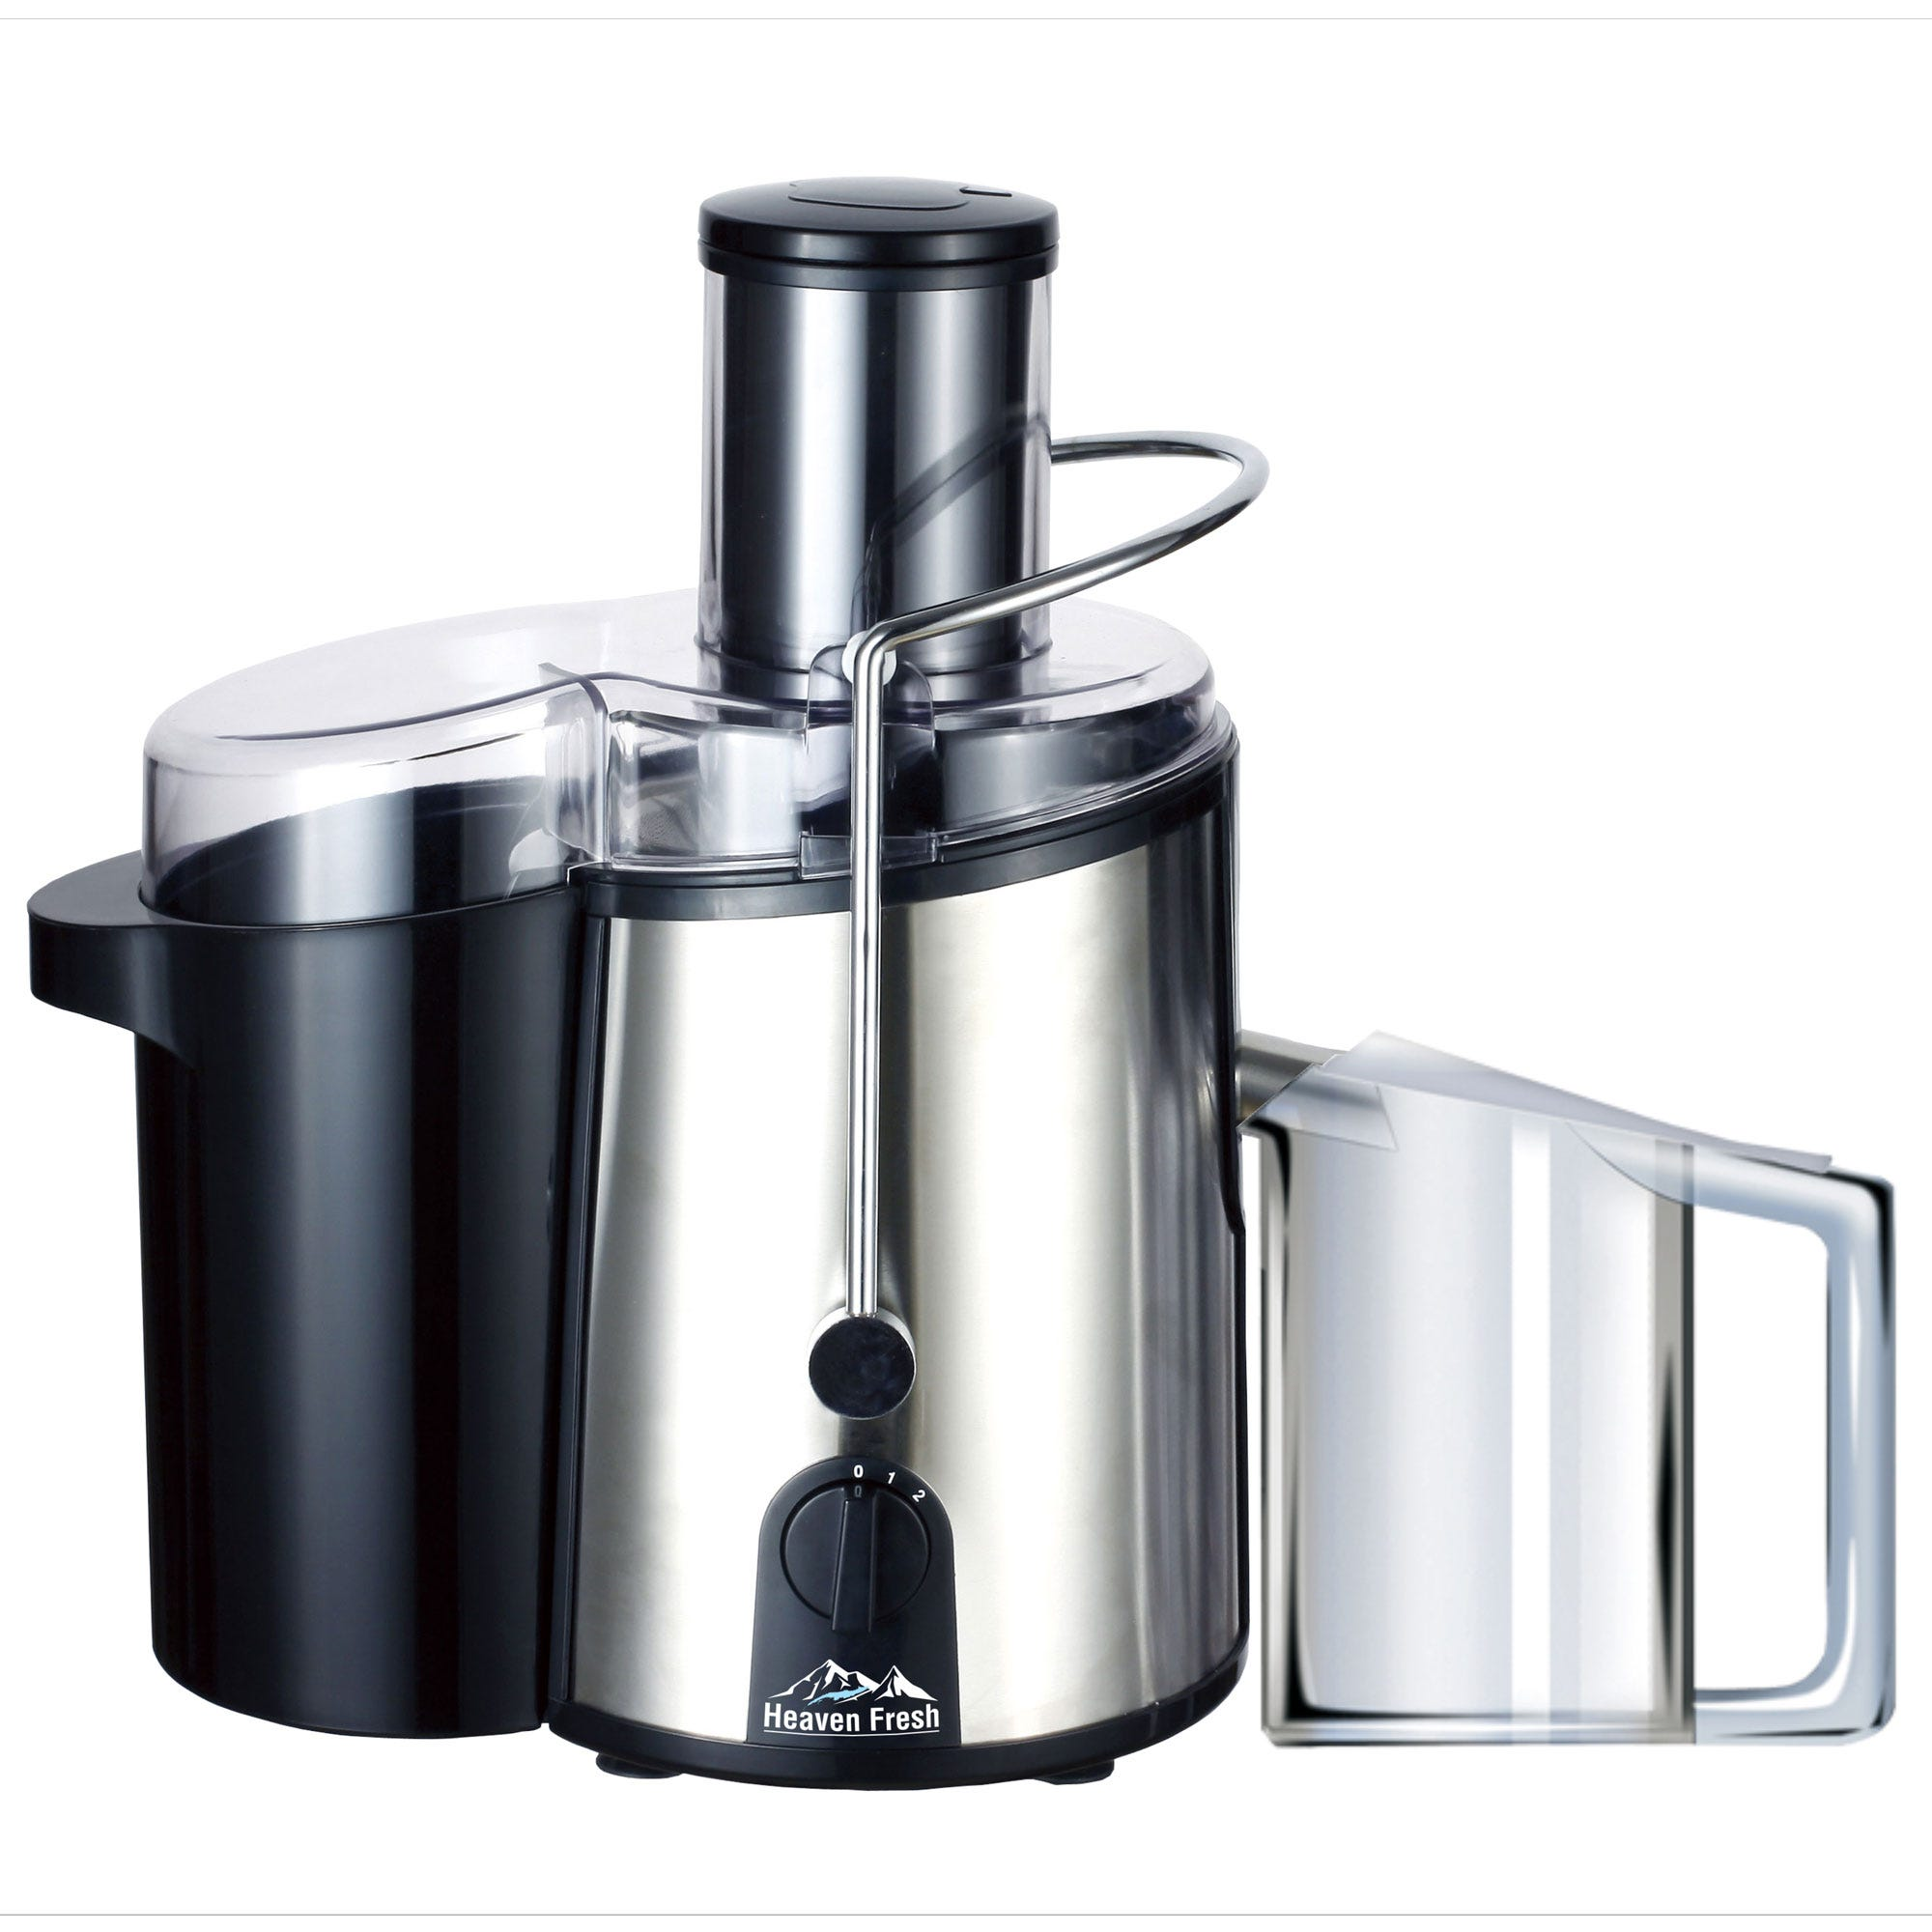 Compare cheap offers & prices of Heaven Fresh HF3022 NaturoPure Powerful Deluxe 750W Juicer - Stainless Steel manufactured by Heaven Fresh